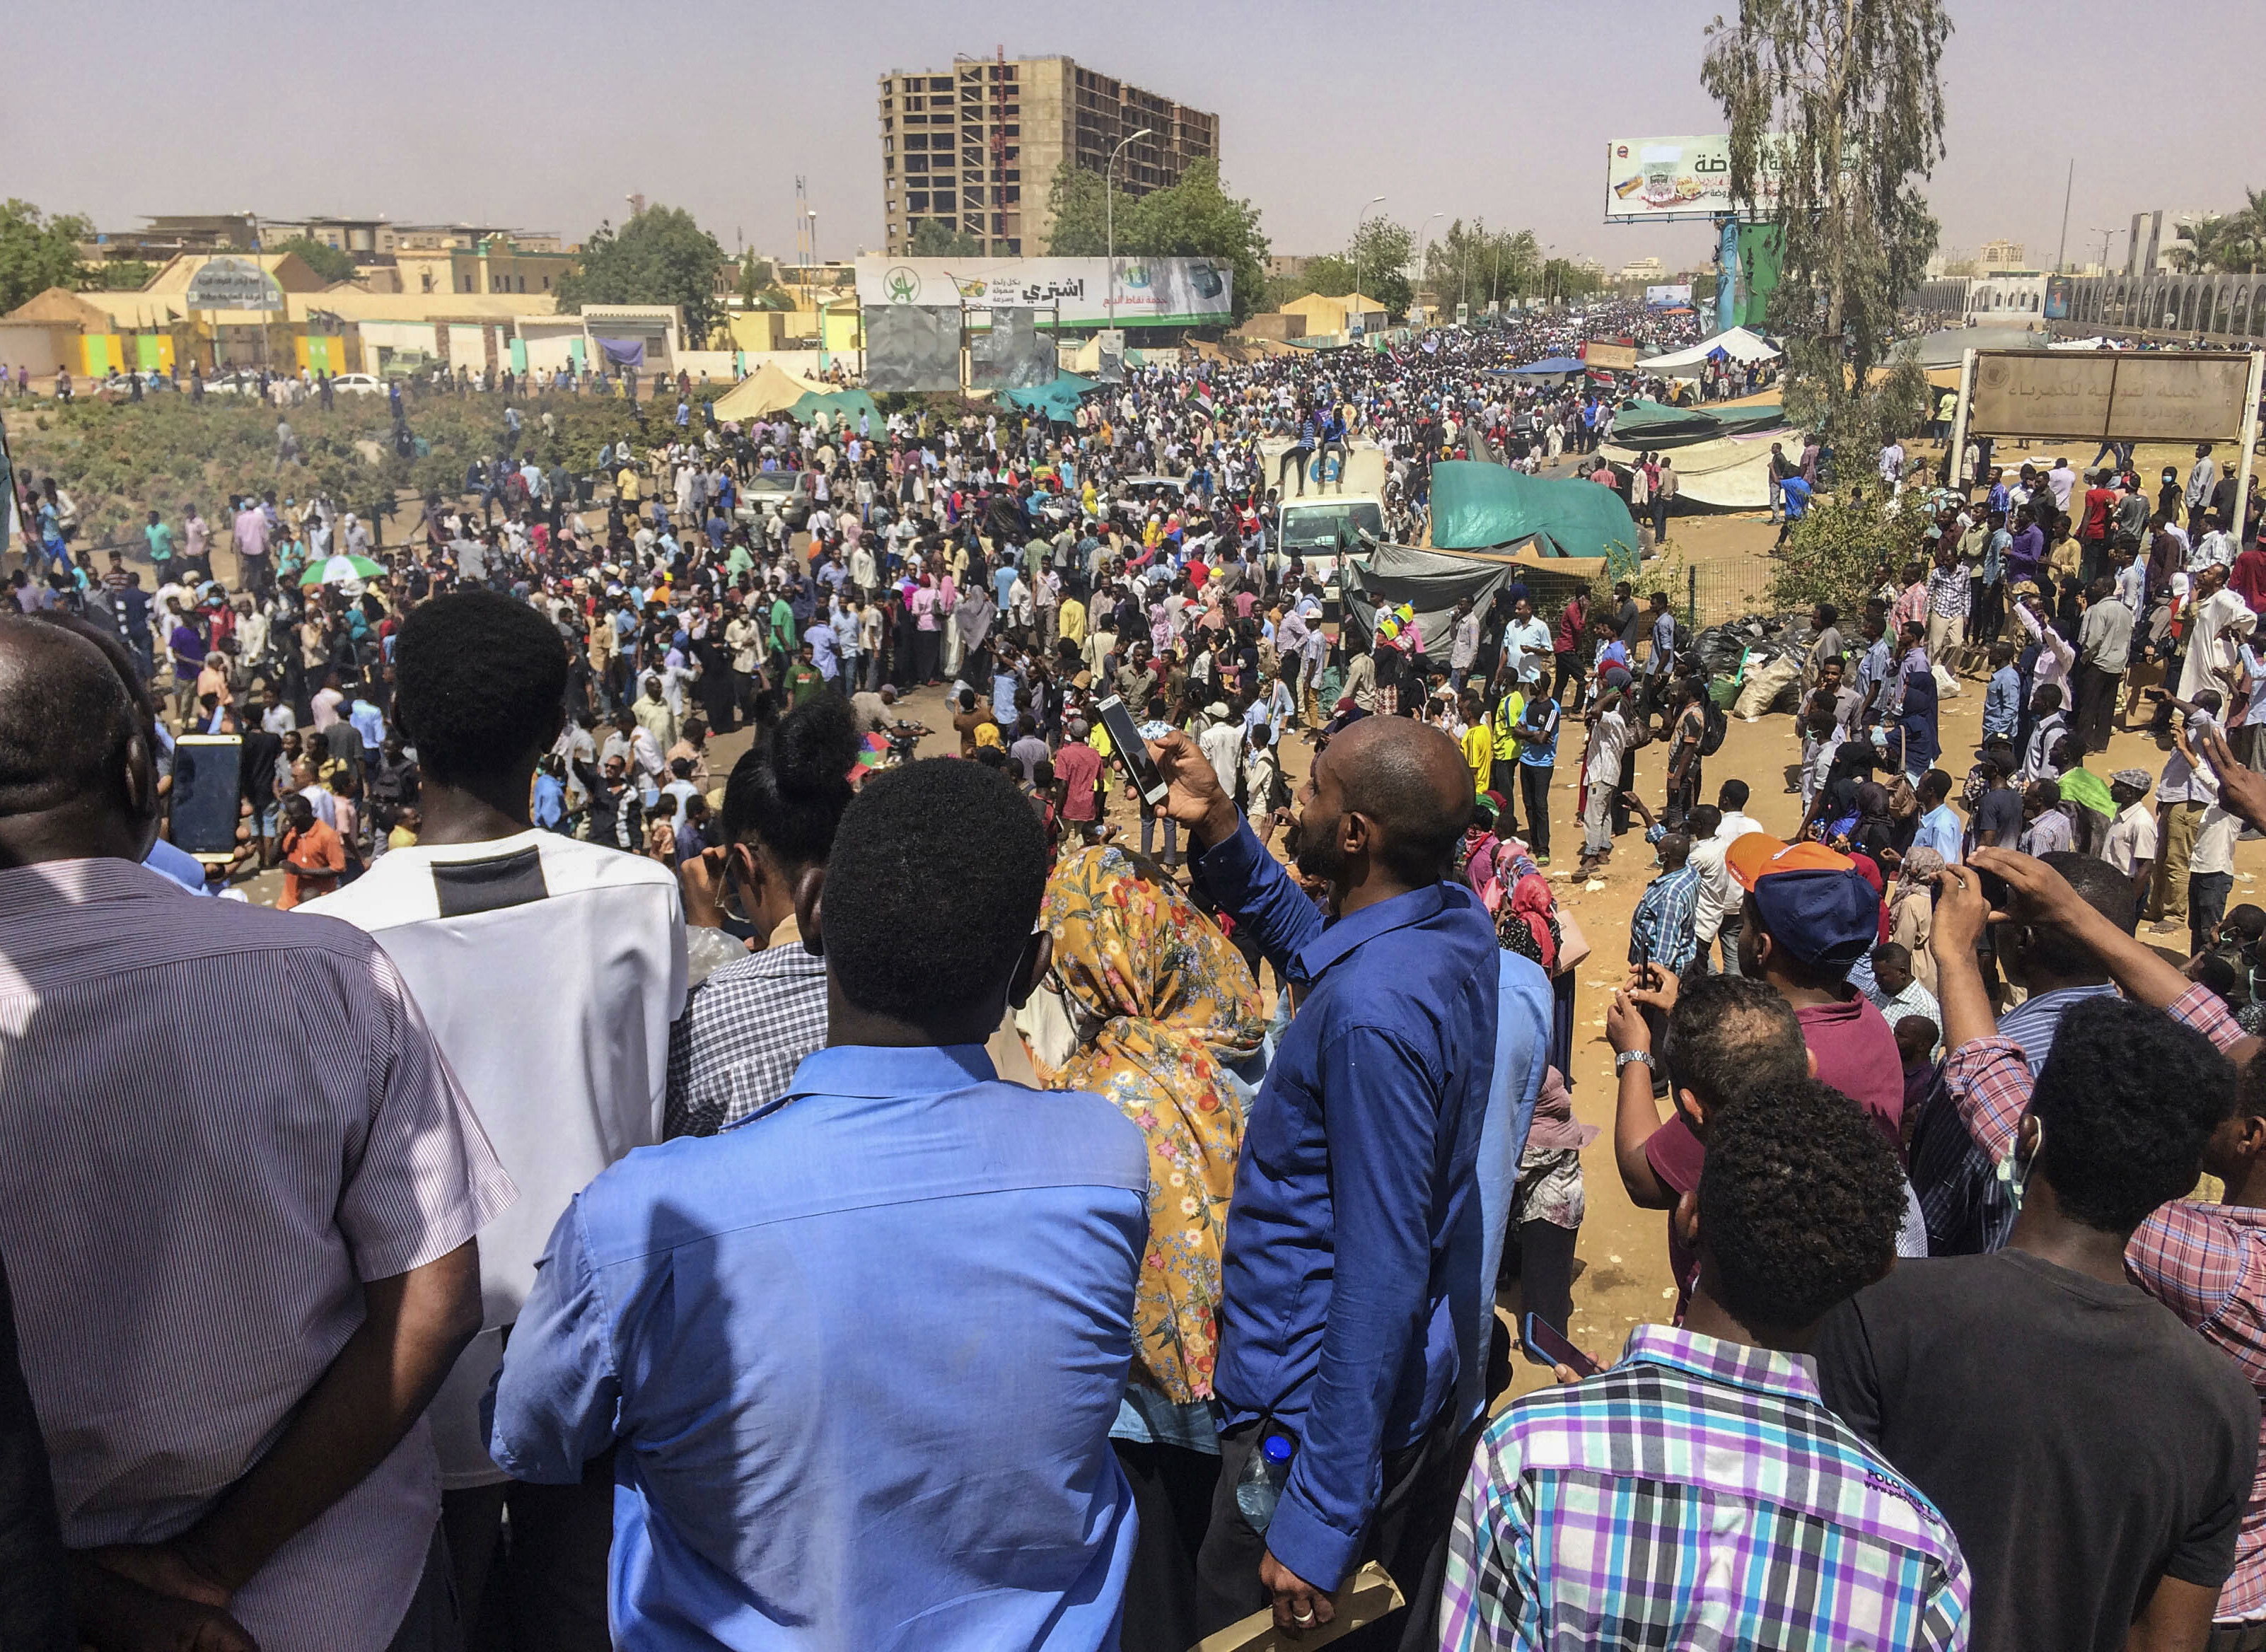 Protesters rally at a demonstration near the military headquarters, April 9, 2019, in the capital Khartoum, Sudan.